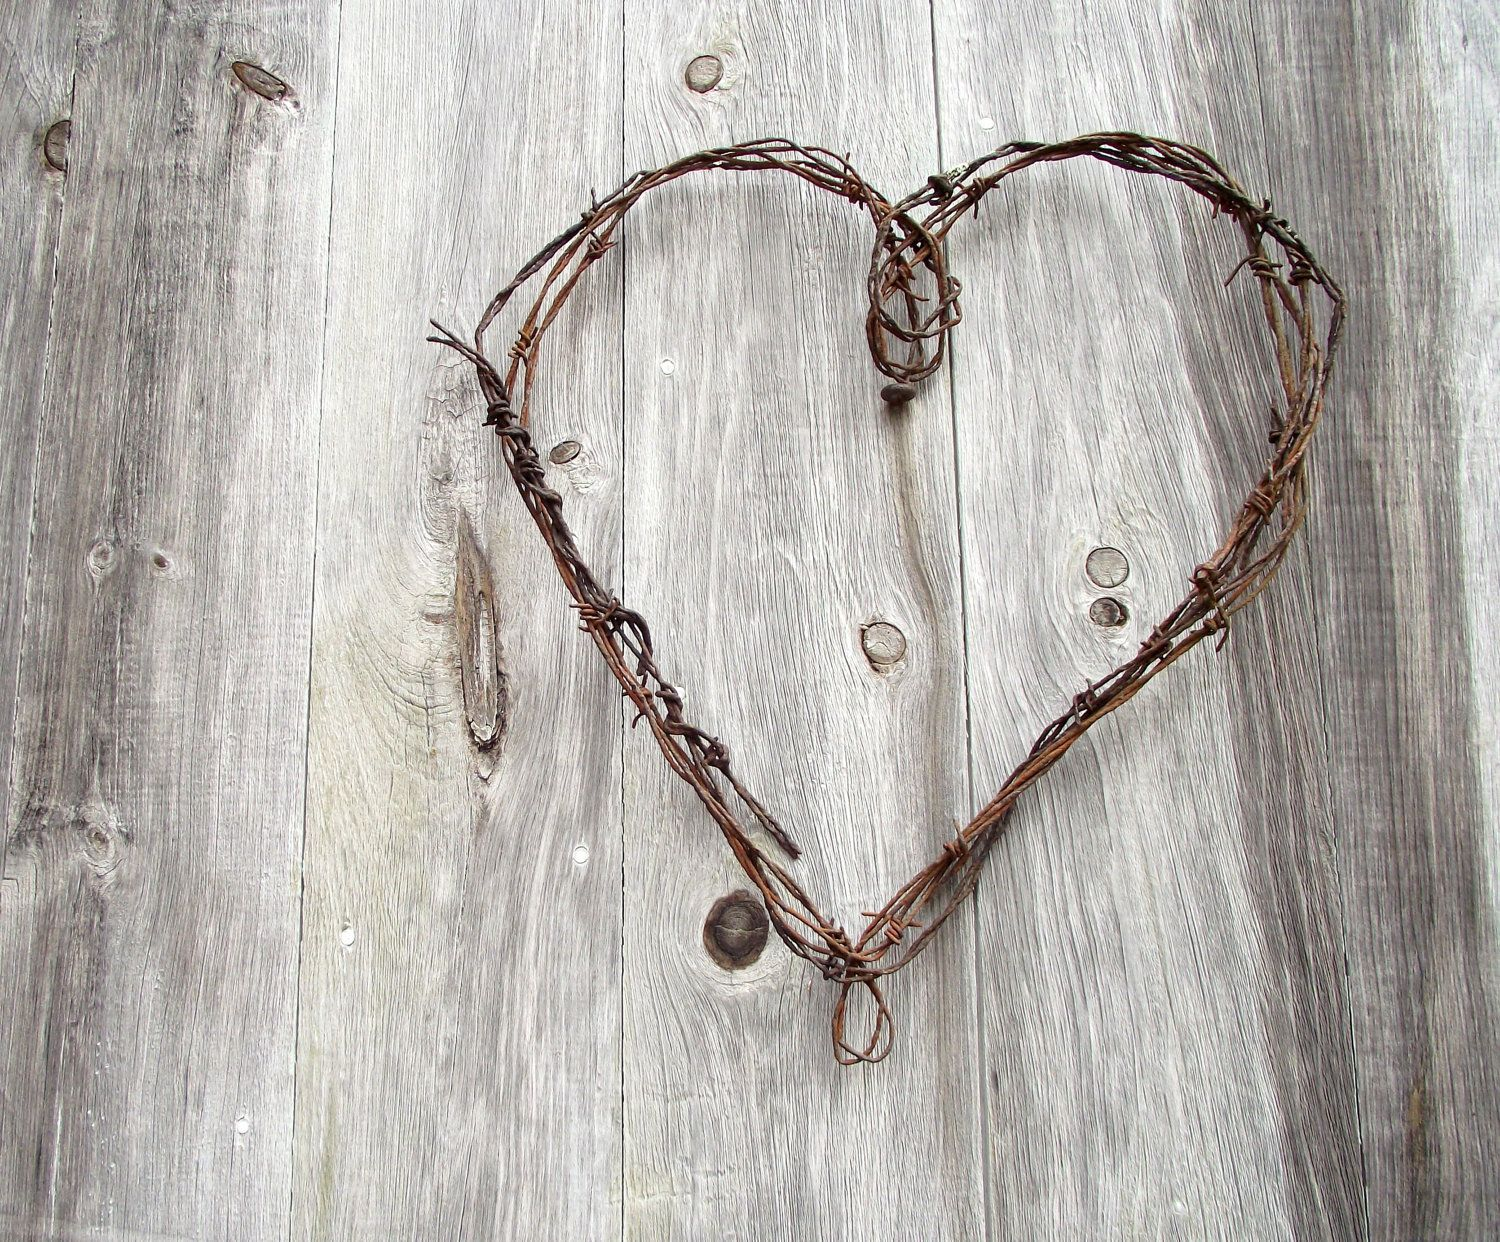 Wire Heart Wreath Antique Rustic Barbed Wire Farmhouse Chic ...